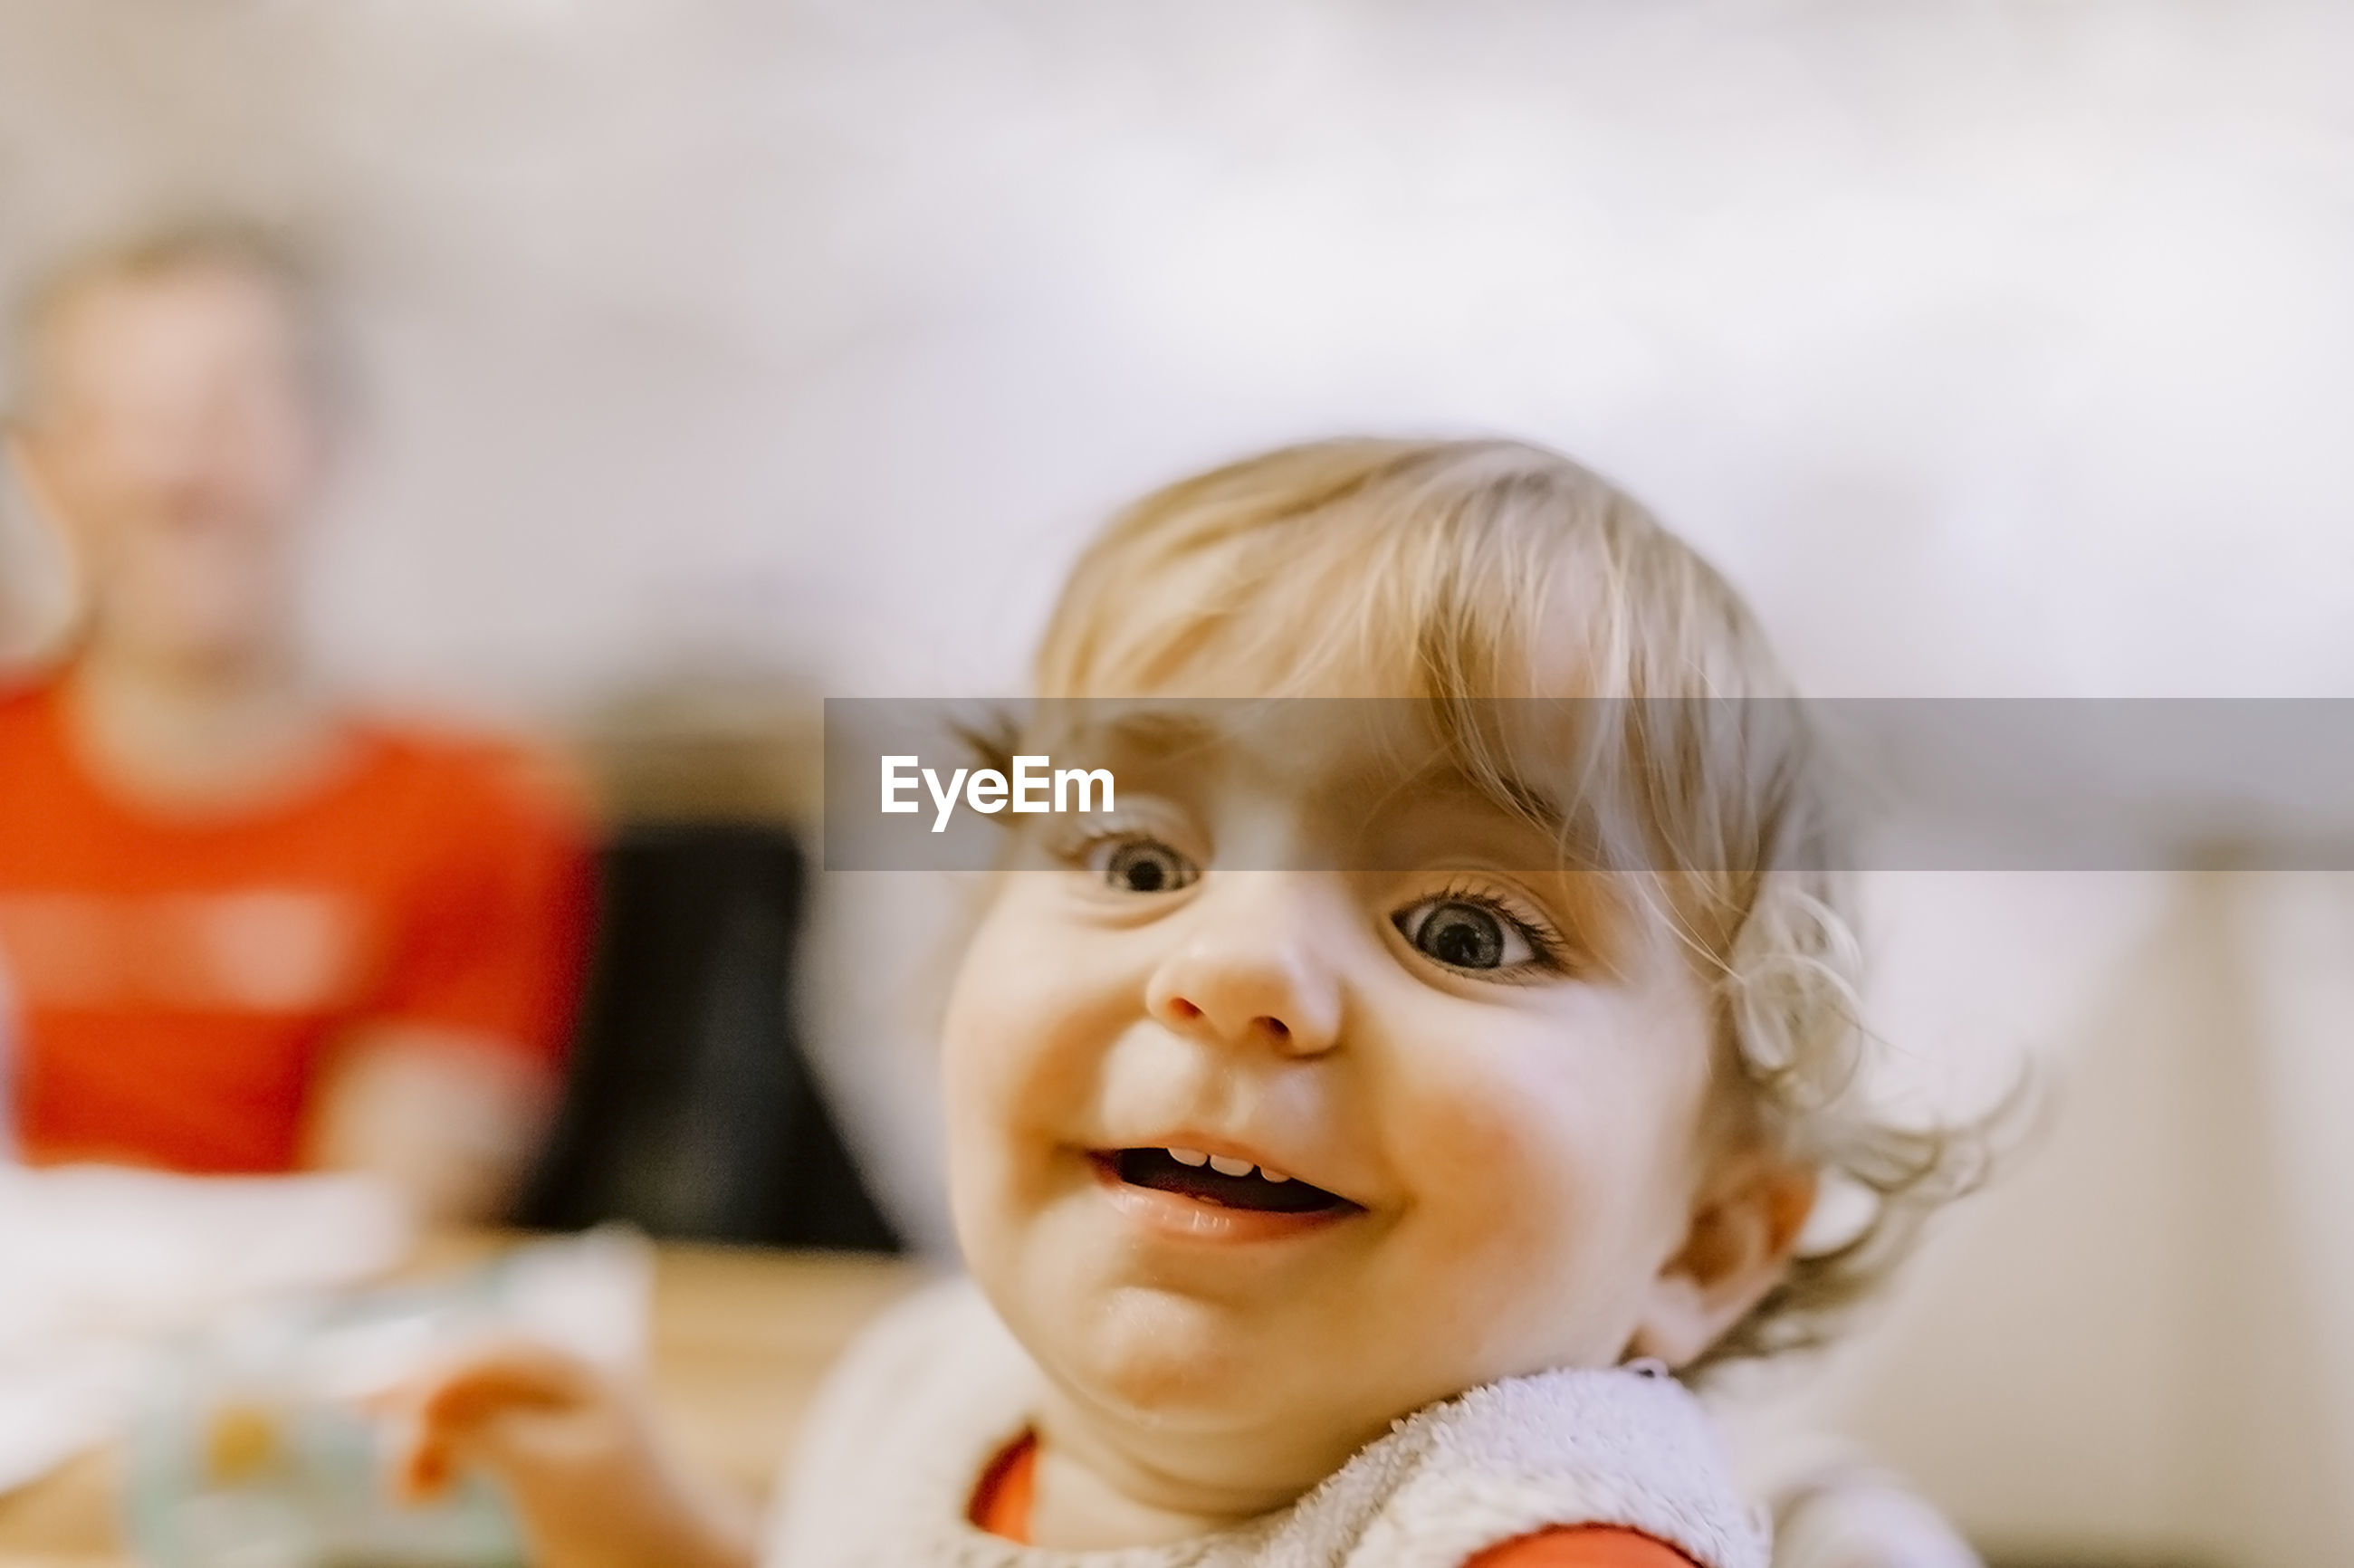 Close-up of cute smiling baby at home